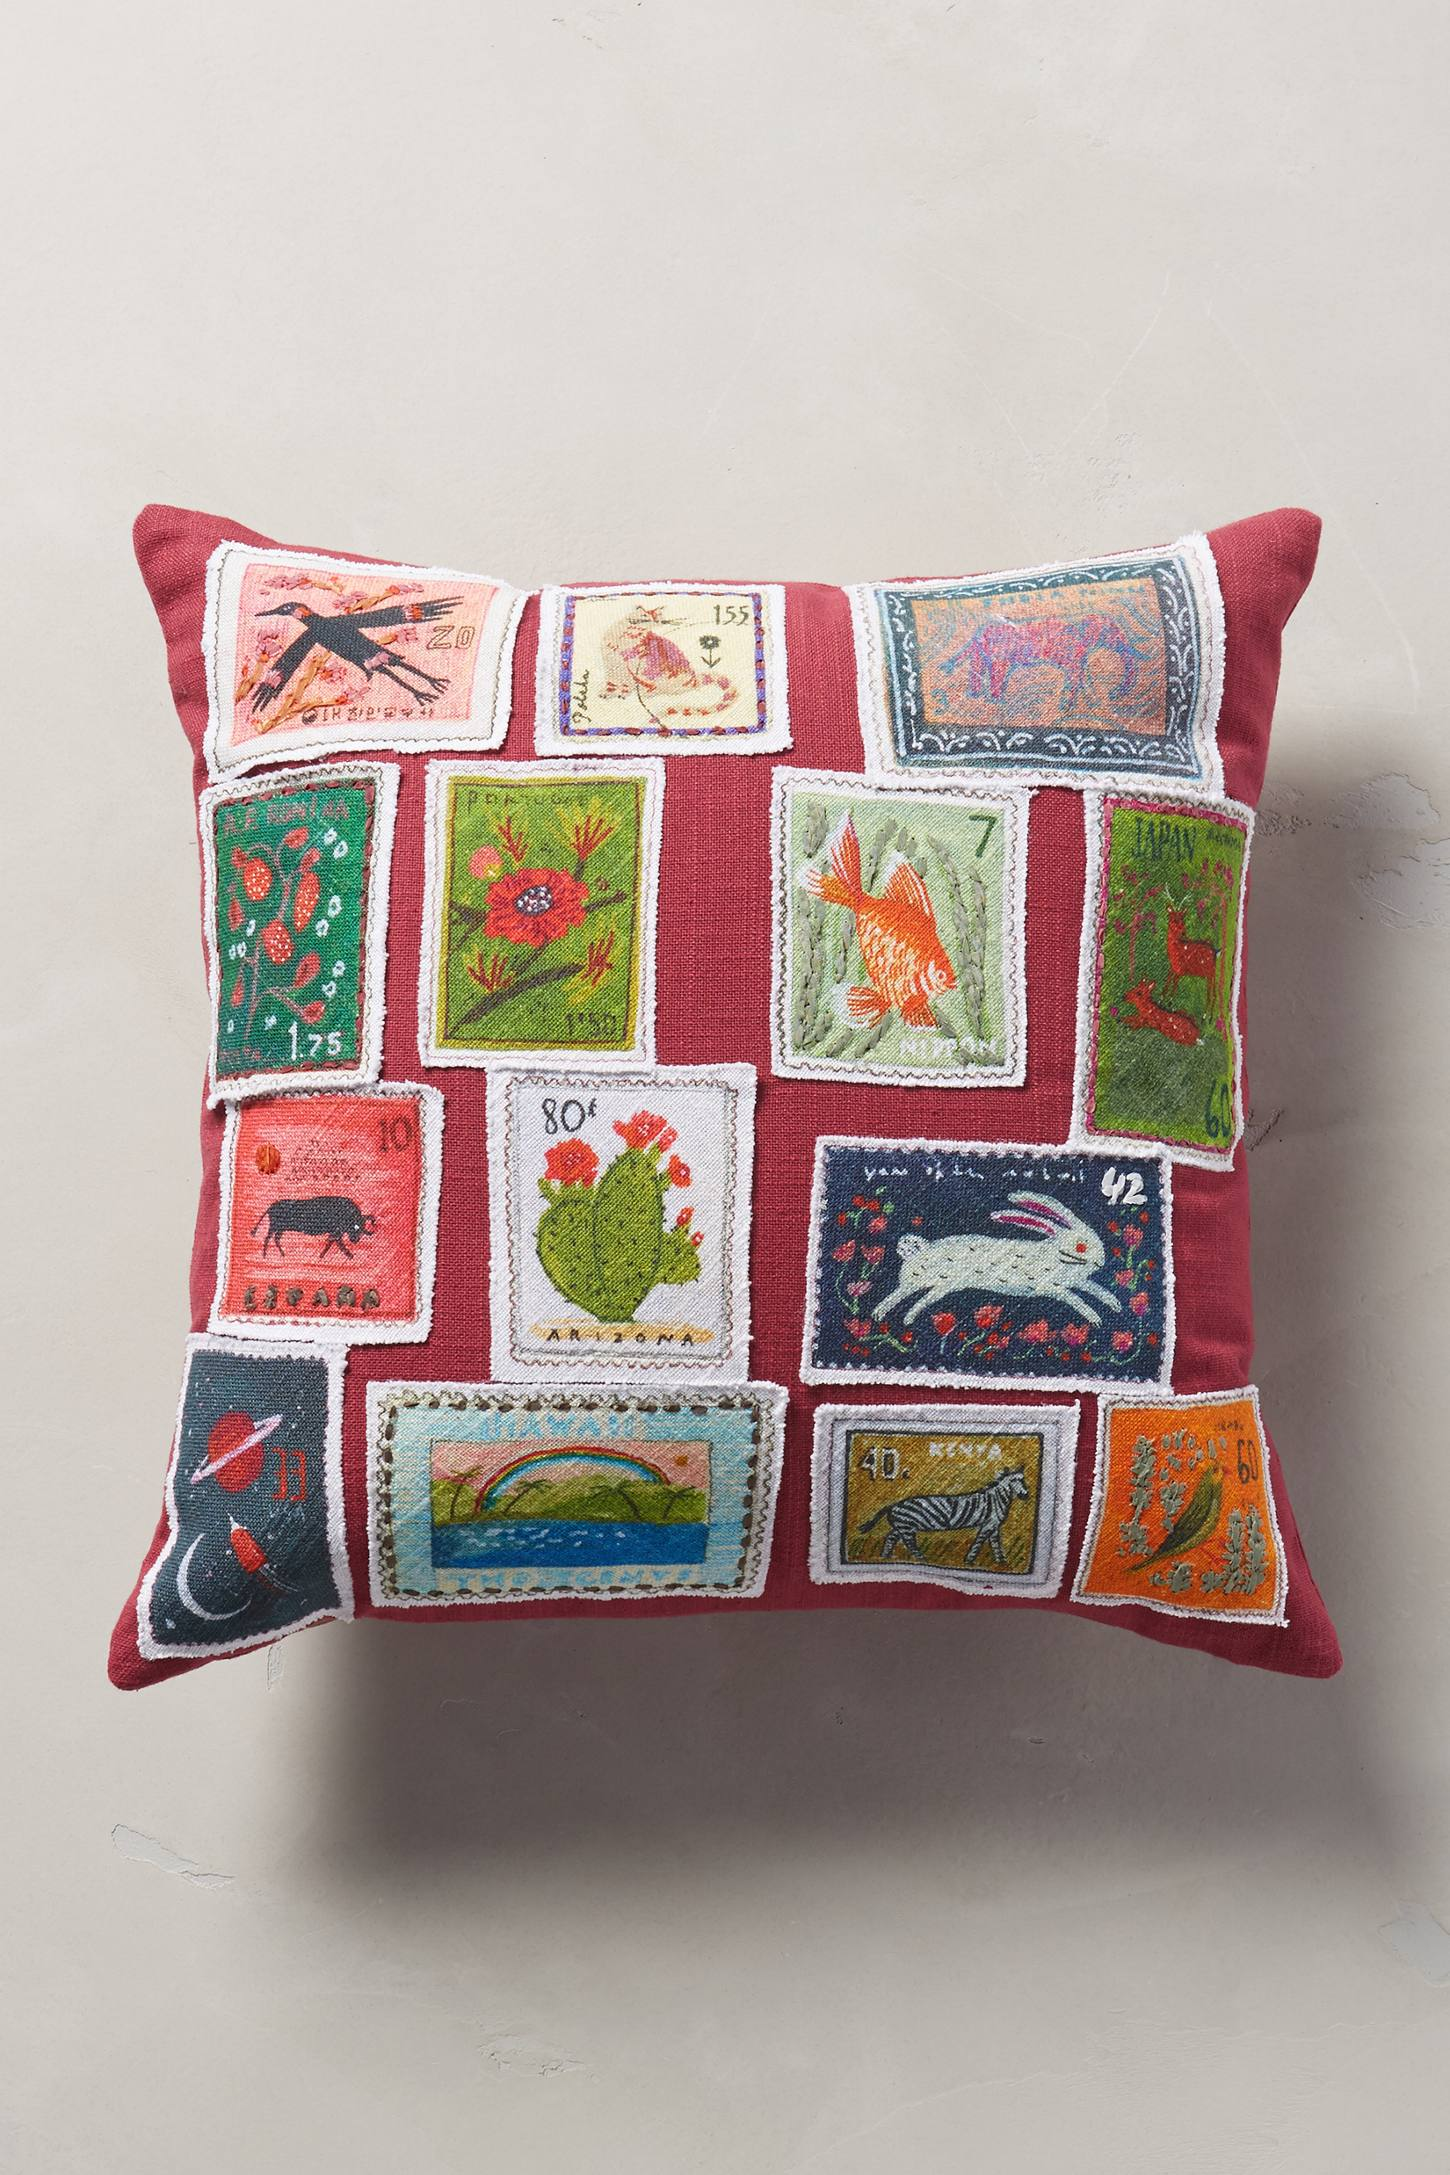 Stamped Curiosity Cushion